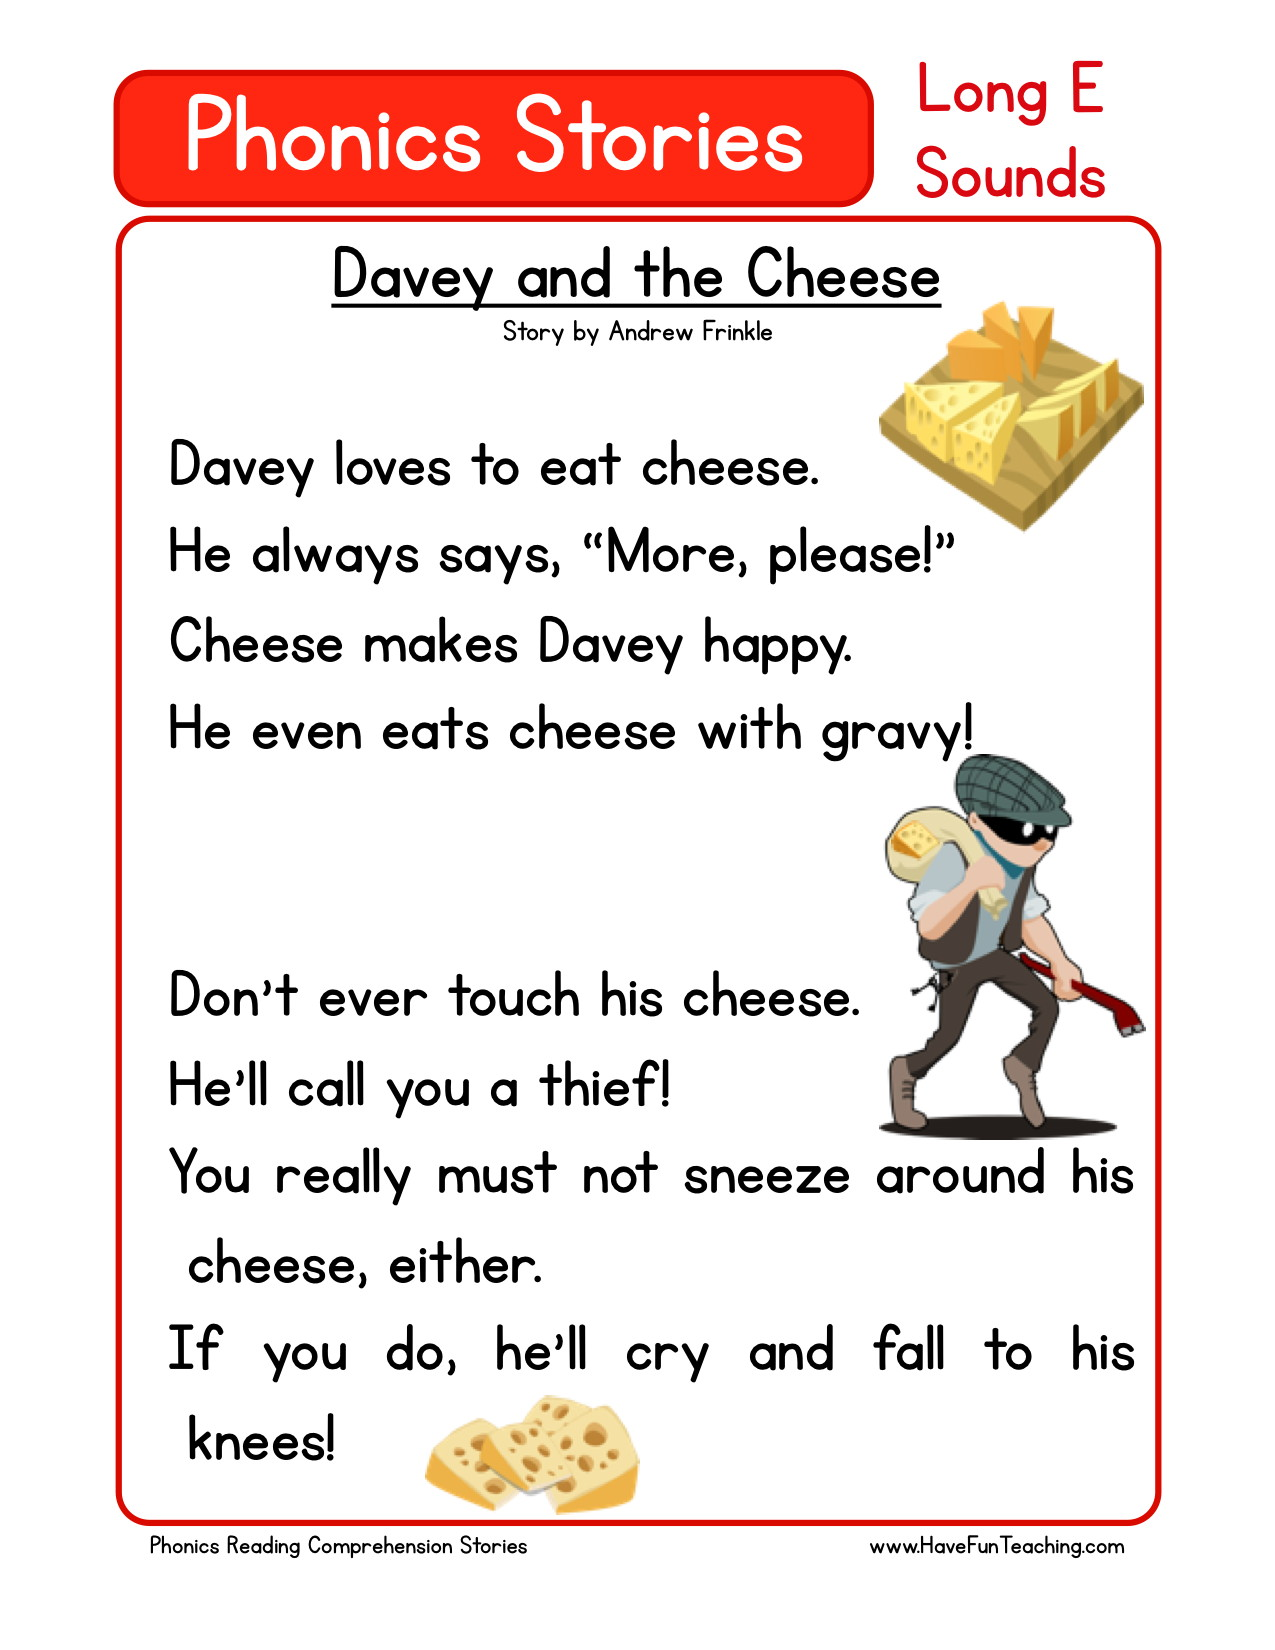 Worksheet Reading Comprehension For Preschool preschool reading comprehension worksheets download davey and the cheese